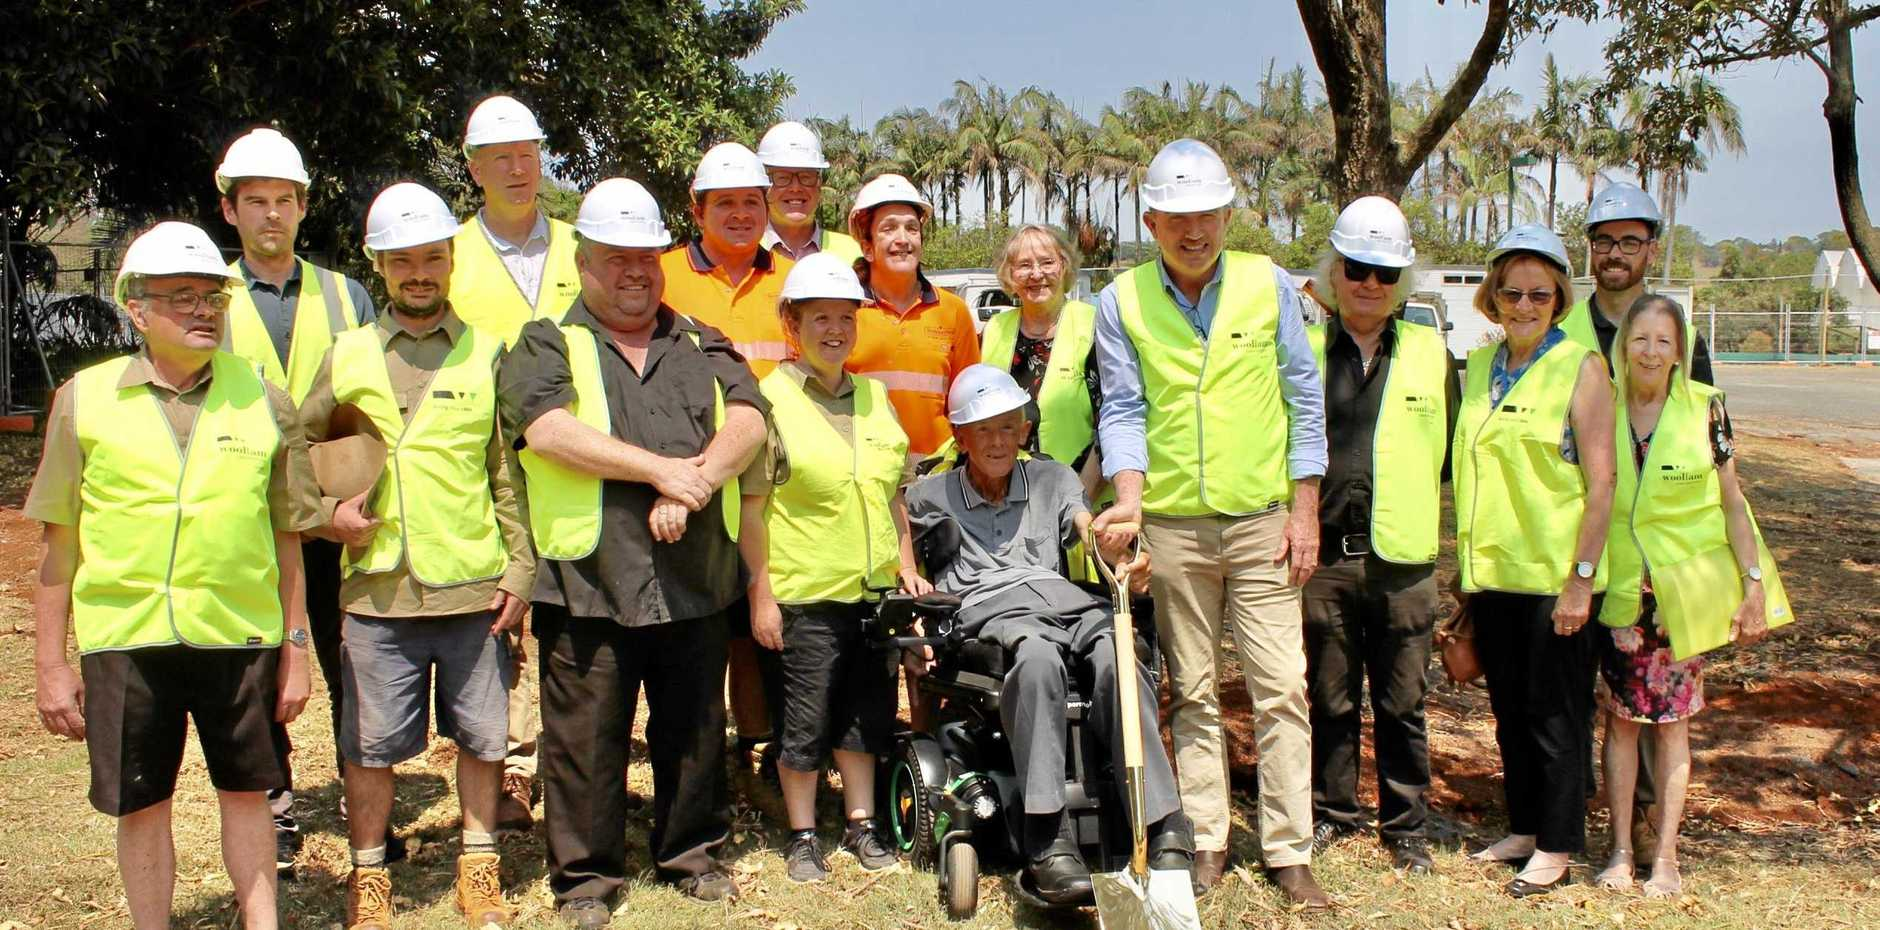 SOD TURNED: Summerland House workers with MP Kenin Hogan MP.